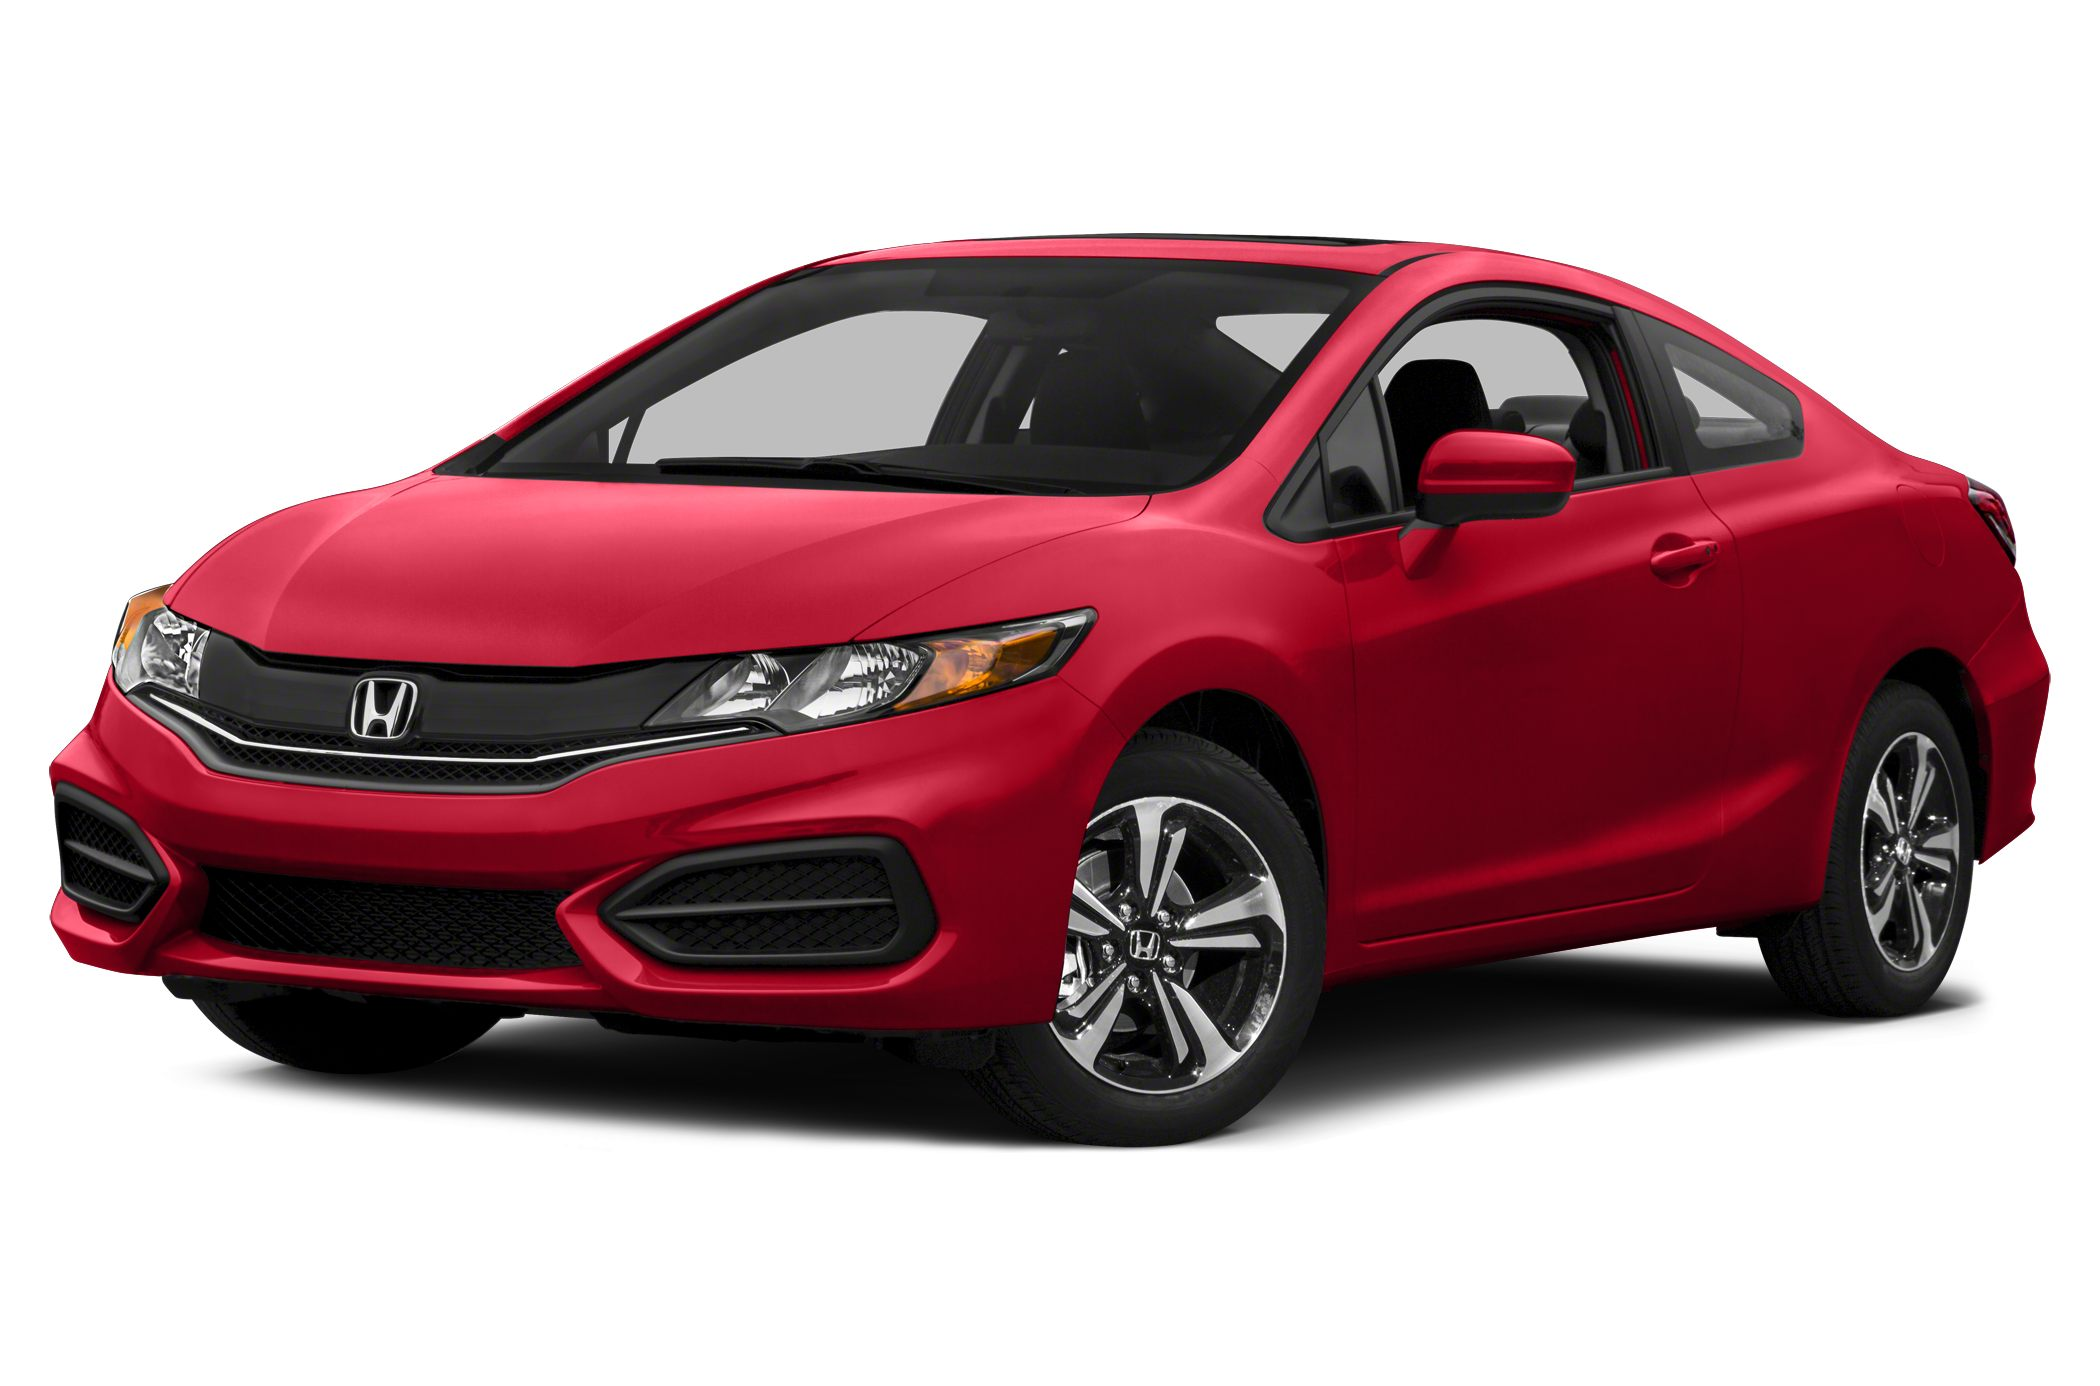 2015 Honda Civic EX Sedan for sale in Greer for $21,190 with 11 miles.